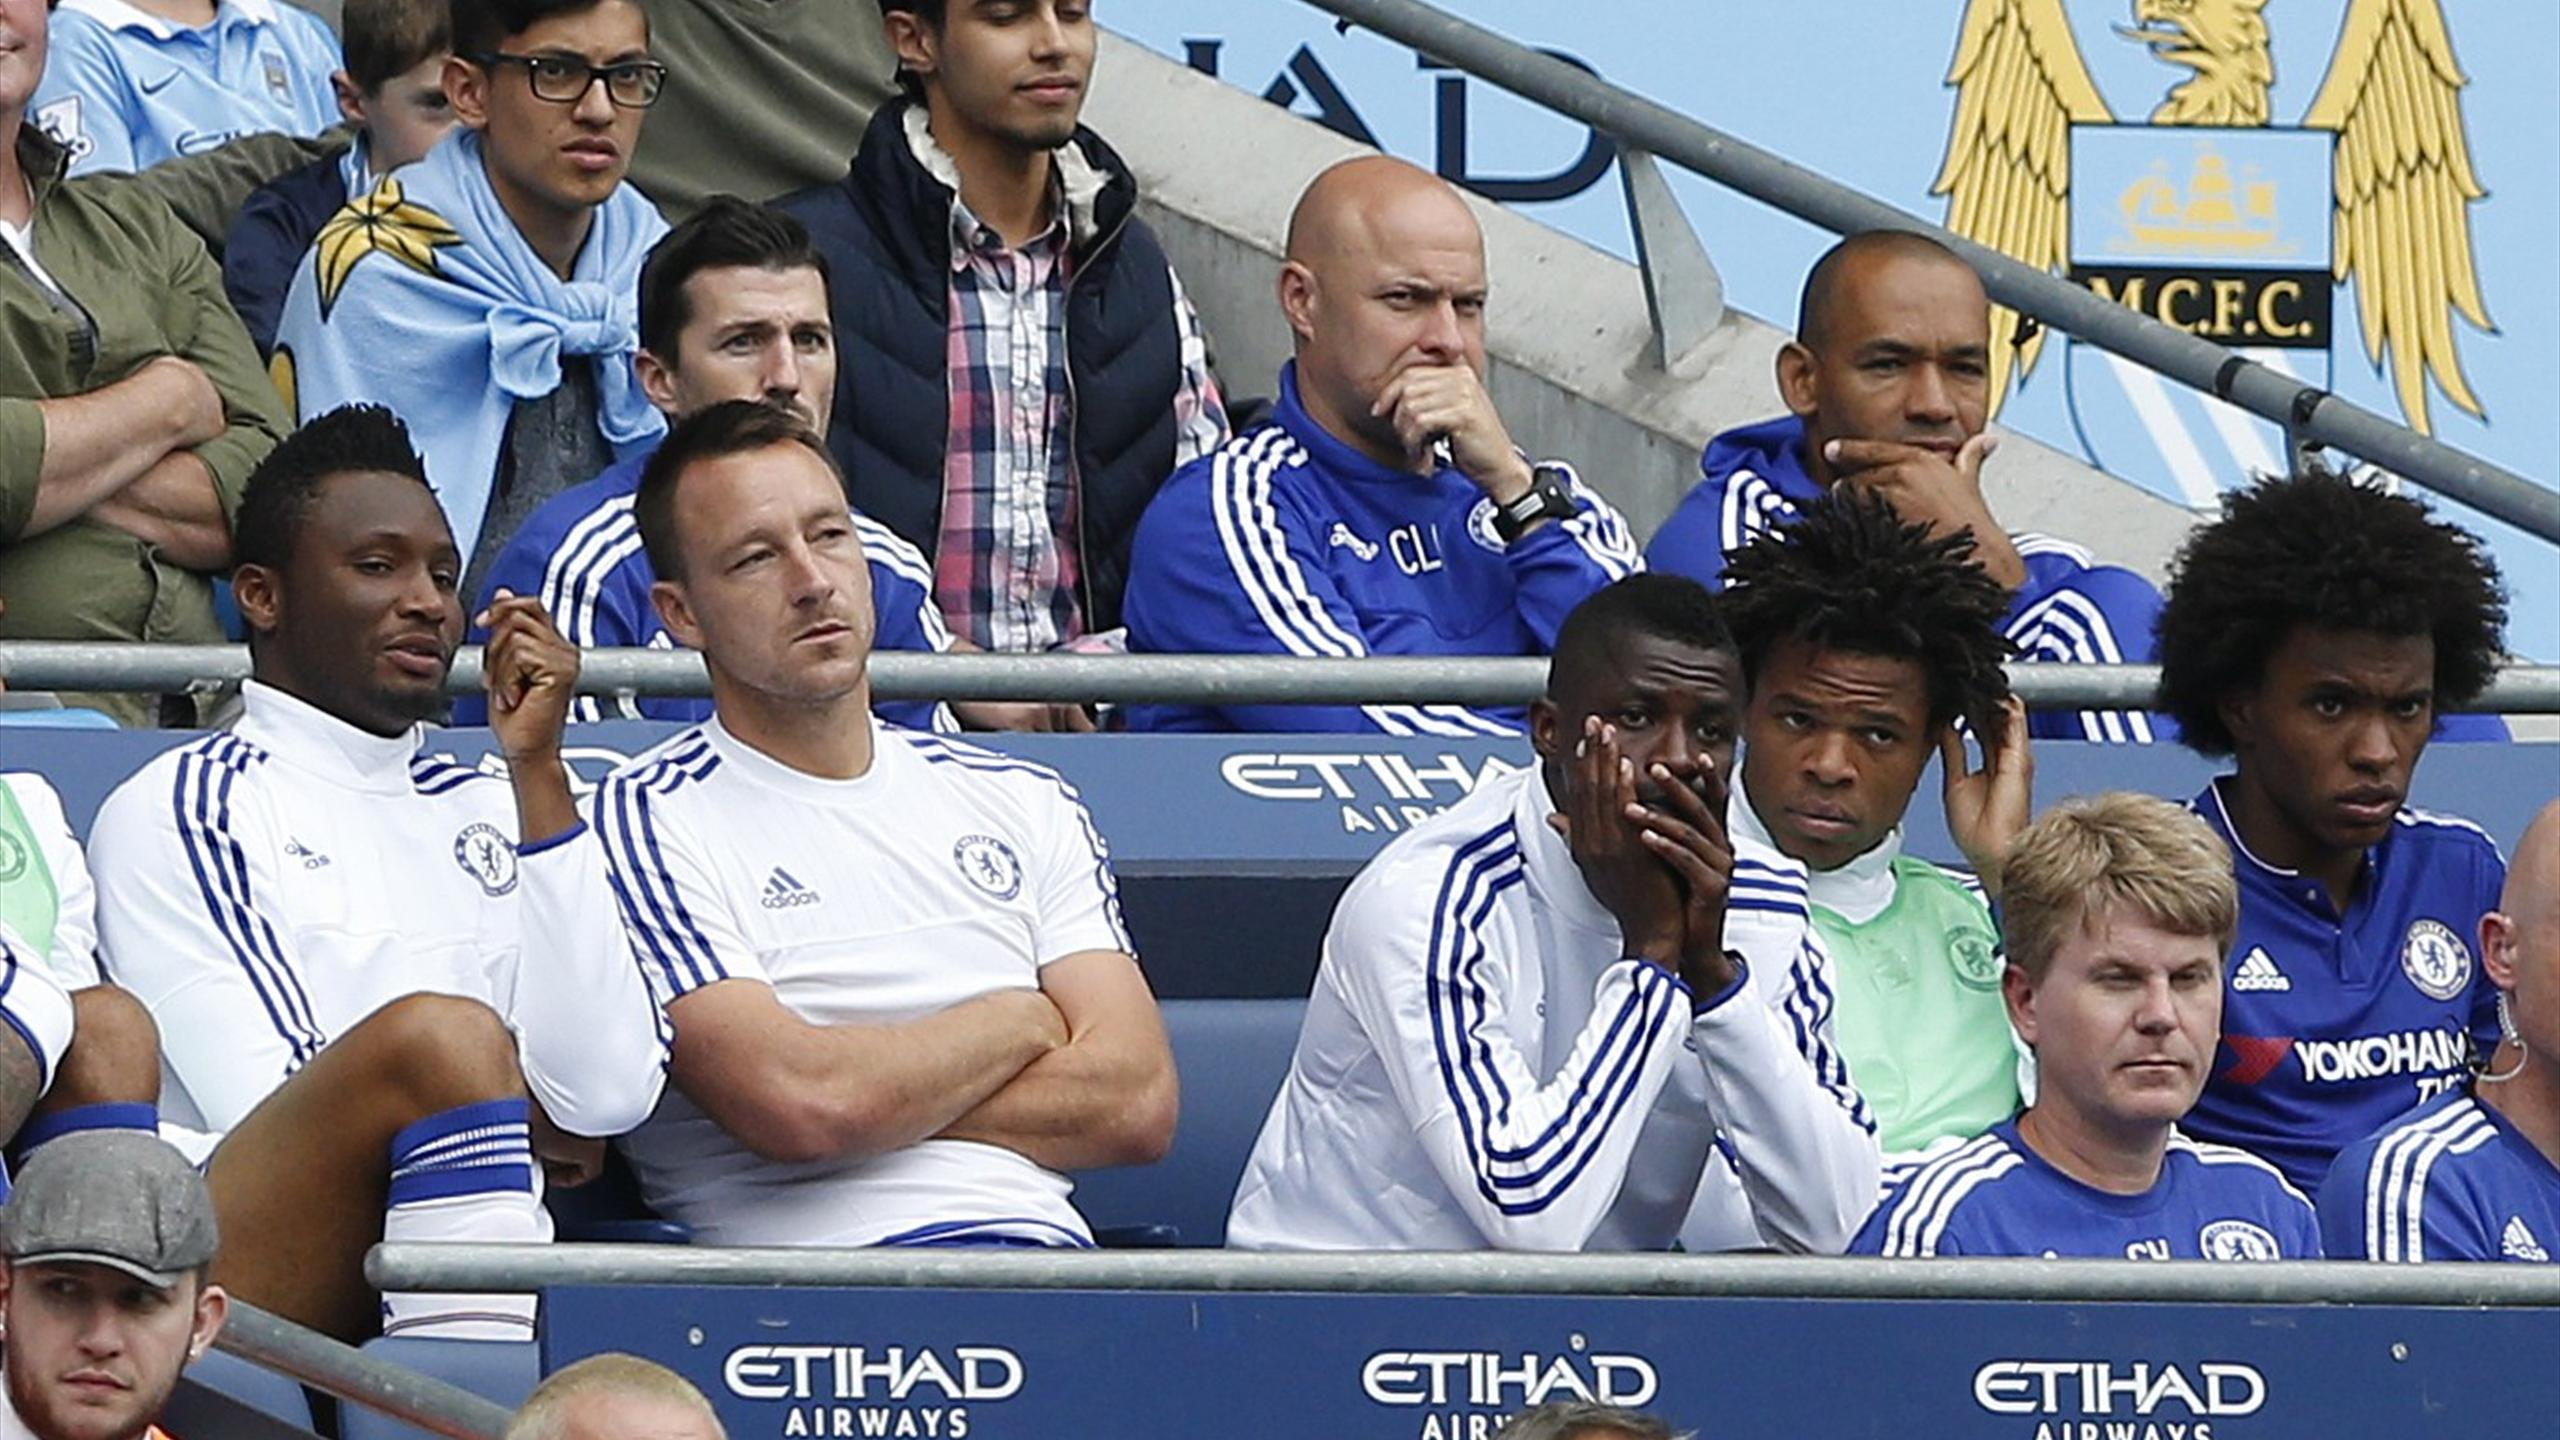 Chelsea's John Terry sat on the bench after being substituted at half time as John Obi Mikel, Ramires, Loic Remy and Willian look on